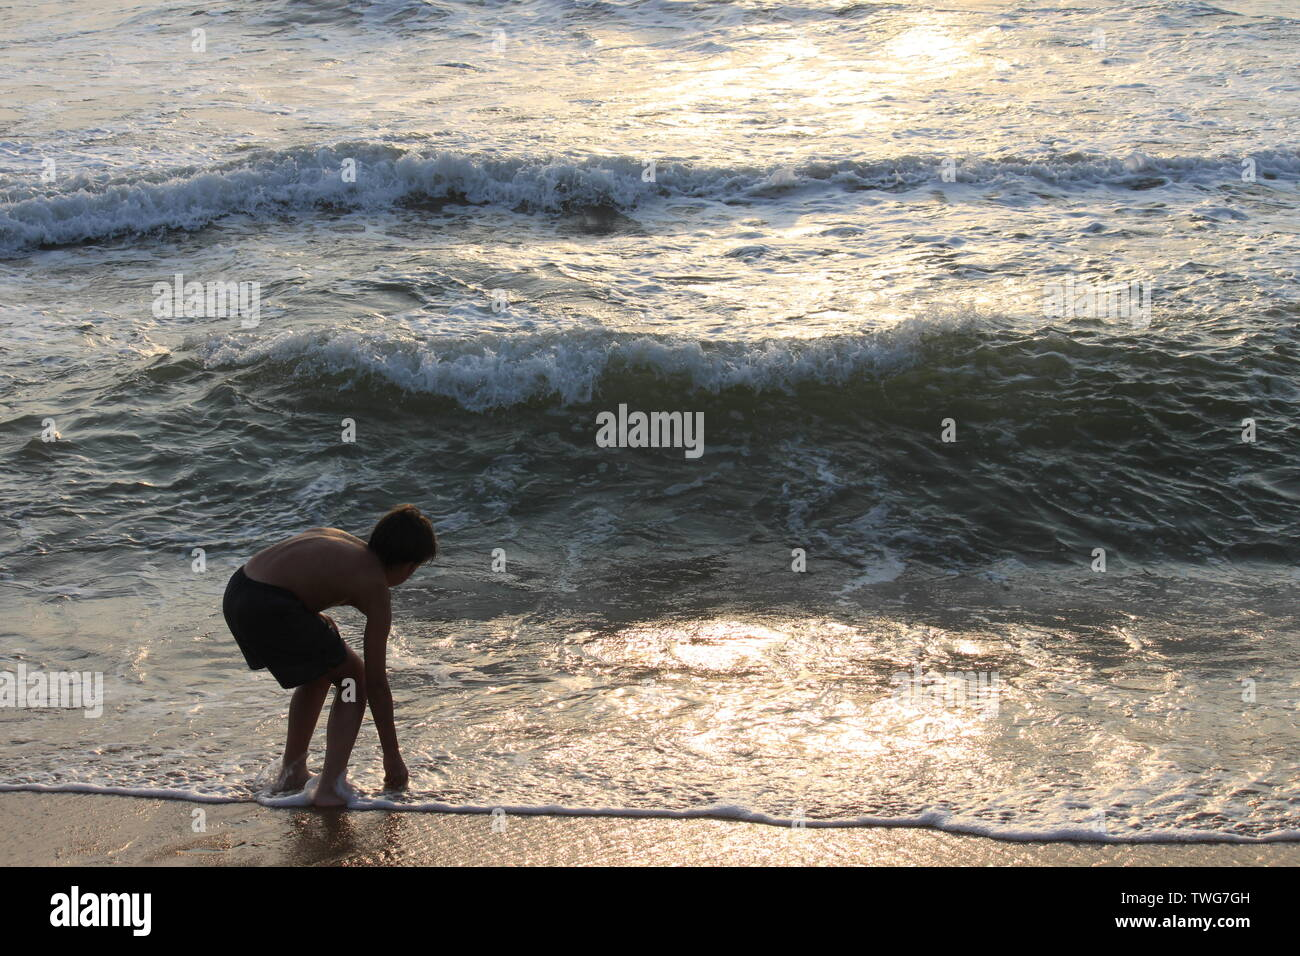 Young boy playing in the sea in Sri Lanka - Stock Image